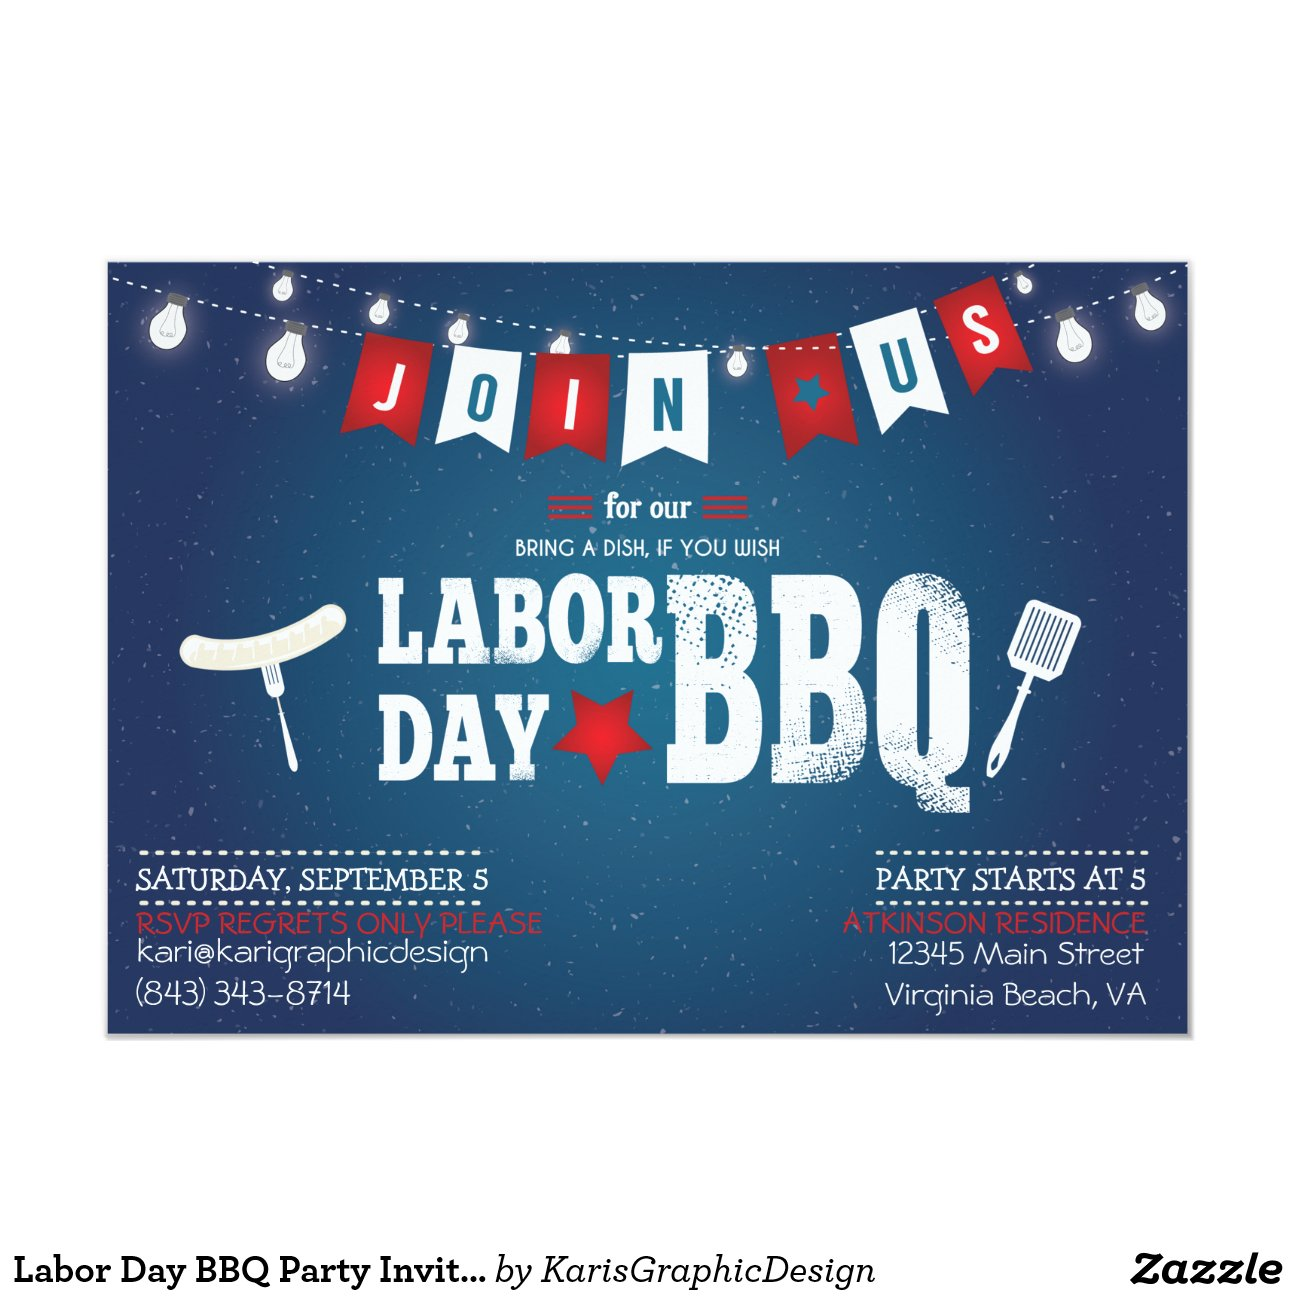 Labor Day BBQ Party Invitation  Labor Day Bbq Party